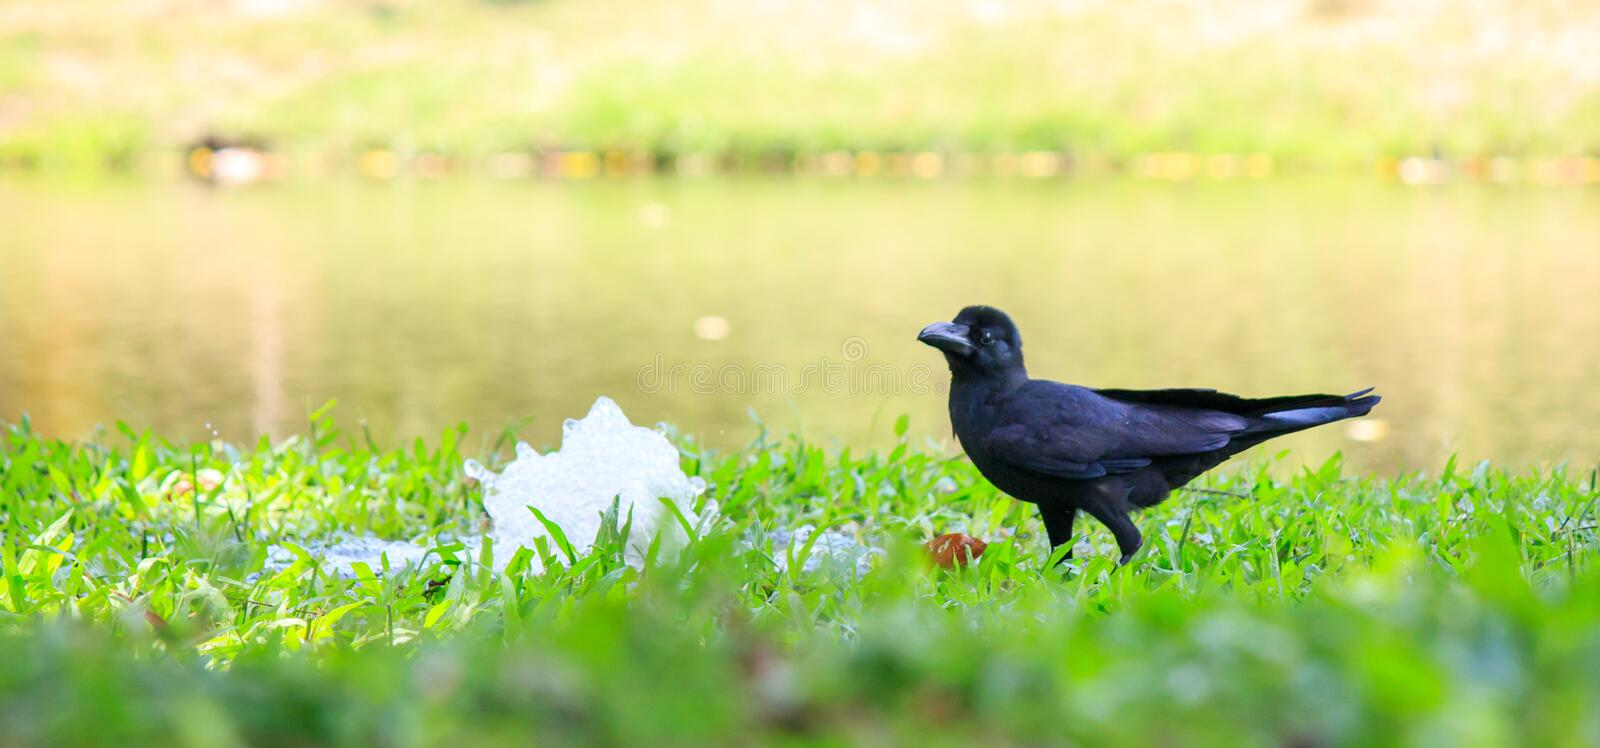 A crow in garden royalty free stock photography